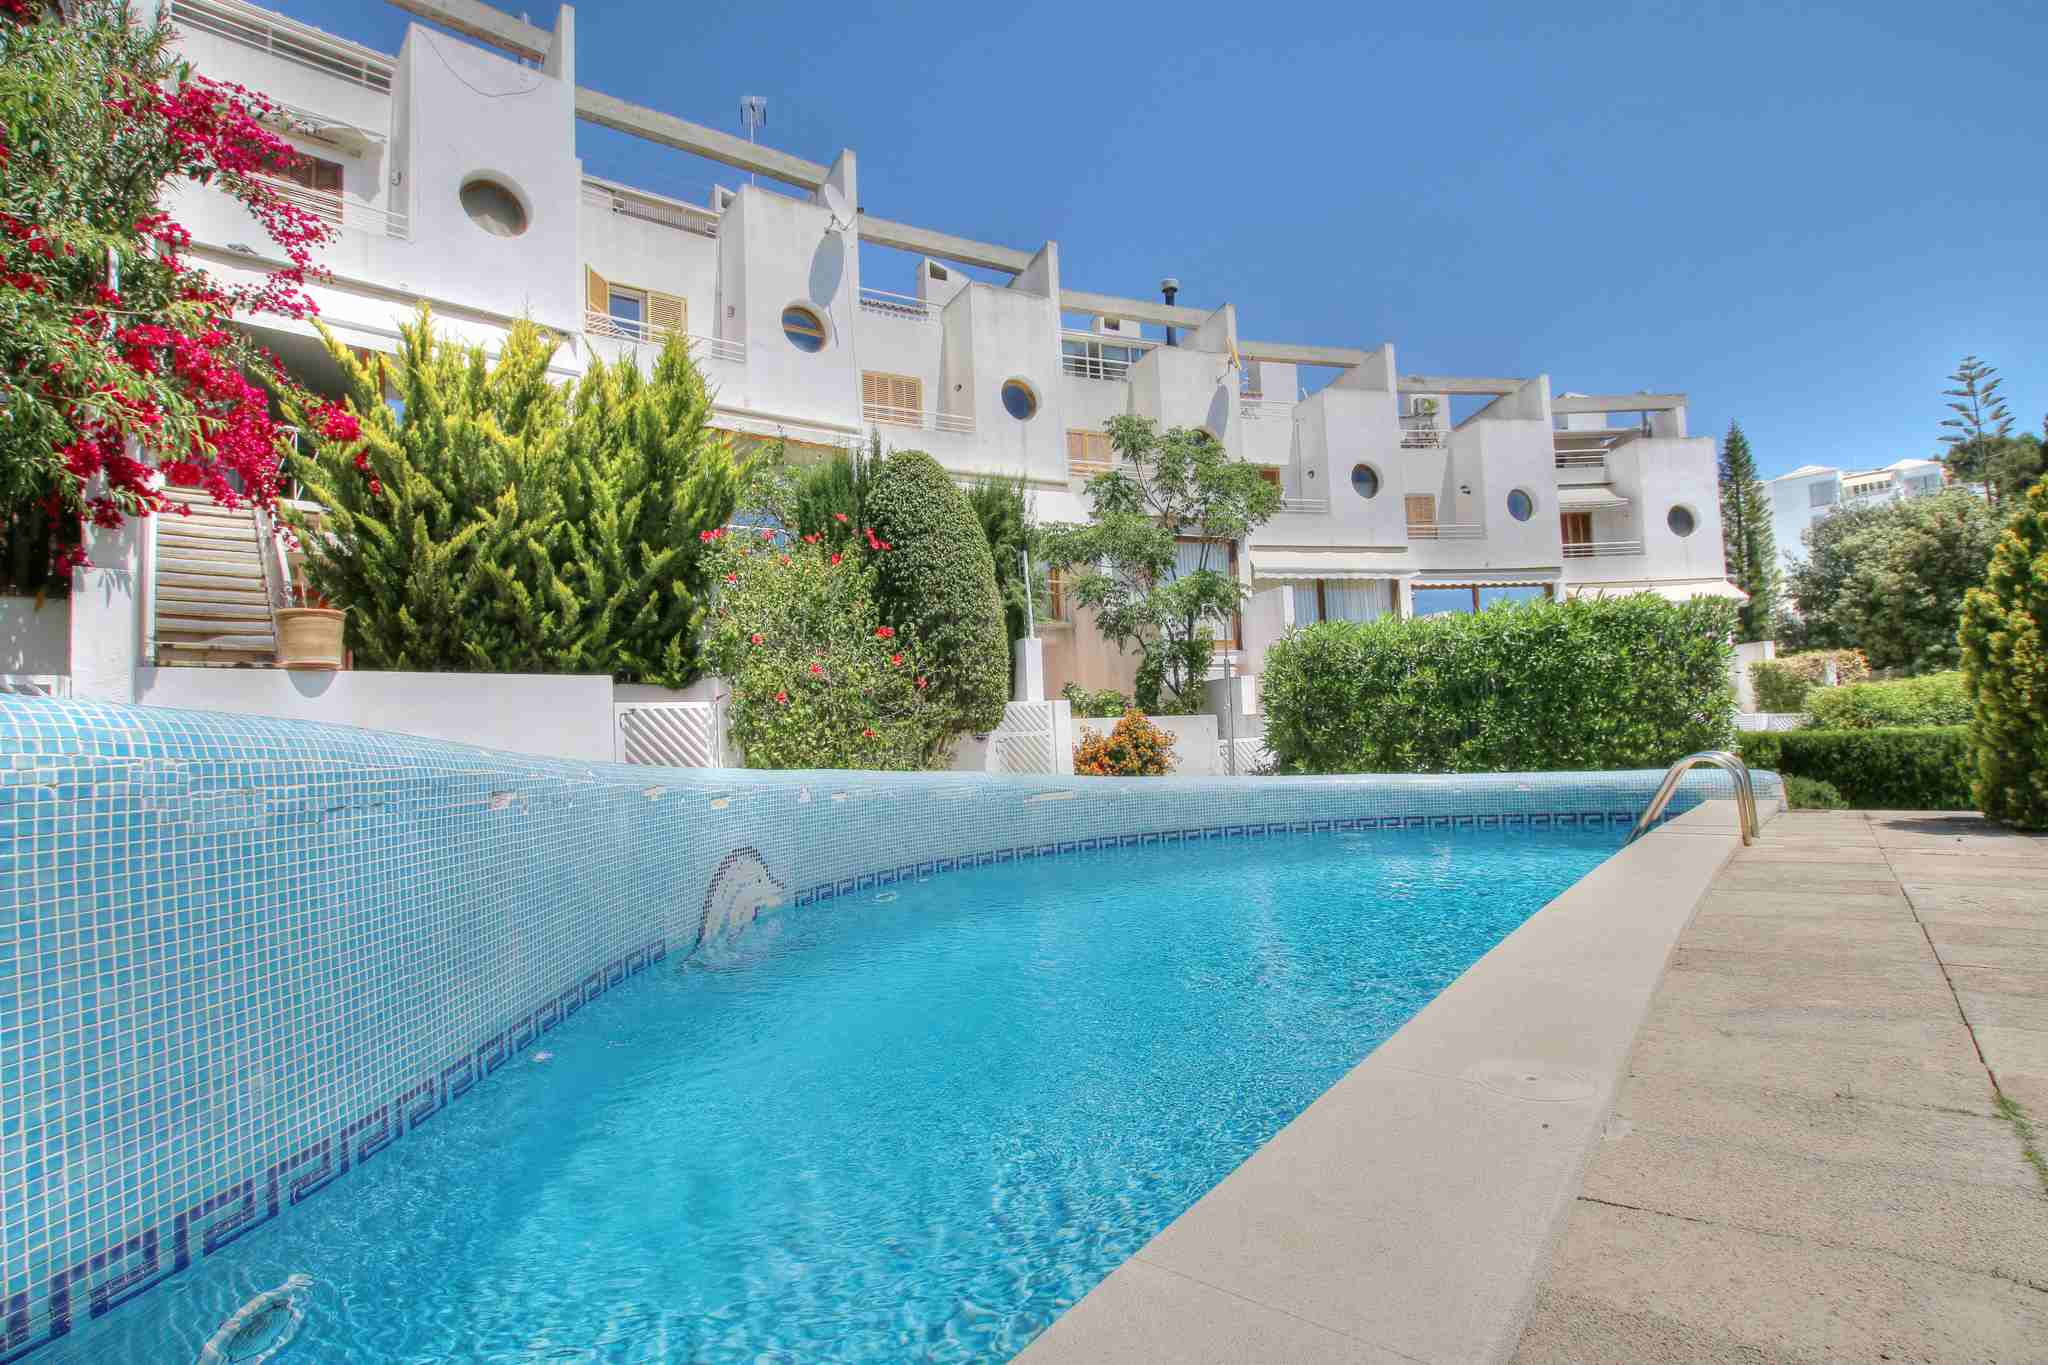 Modern townhouse for rent in La Bonanova @ Palma de Mallorca